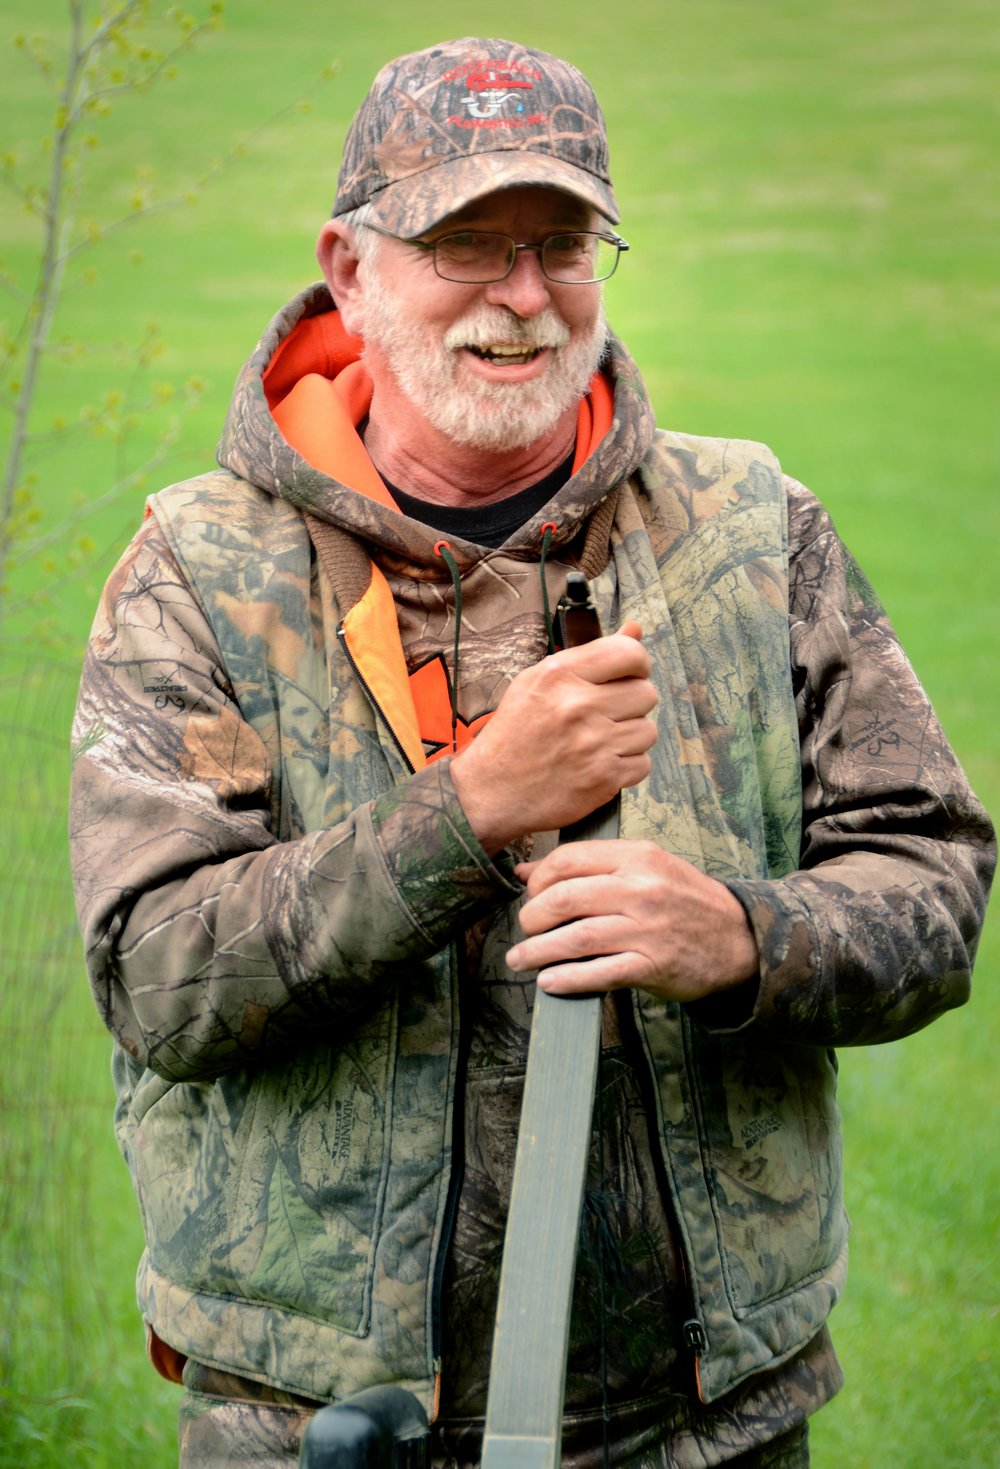 Kelly White with his recurve bow